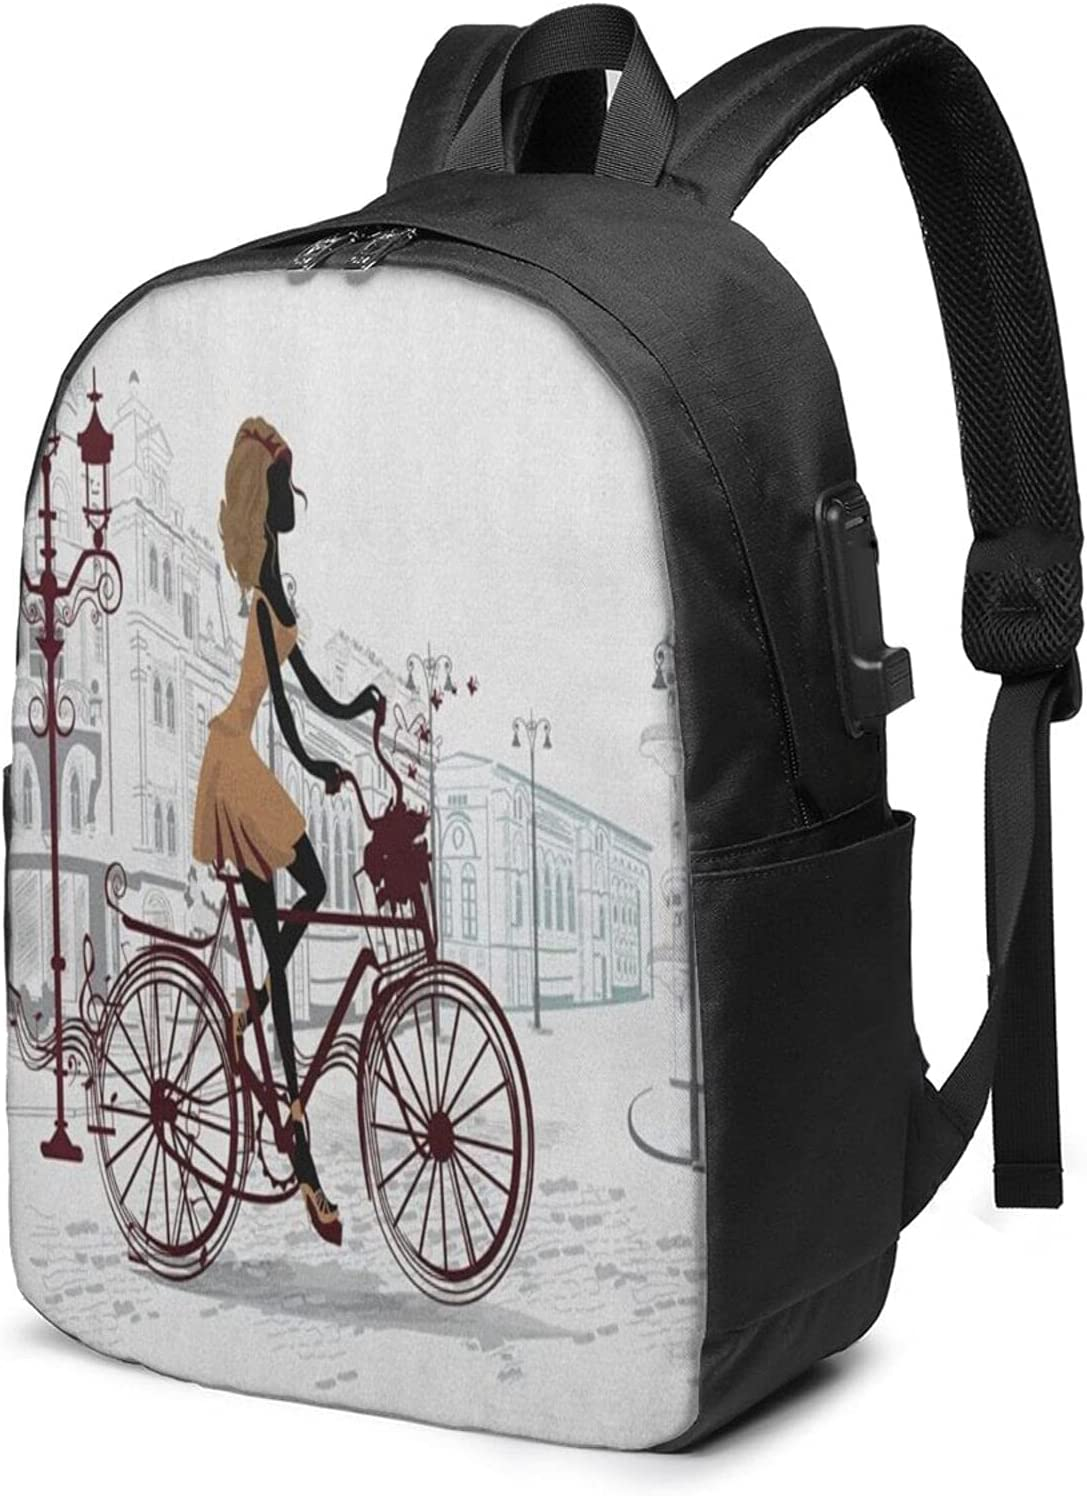 Columbus Mall EILANNA Usb Backpack Carry On Bags Young Inches 17 Girl In Paris Max 57% OFF